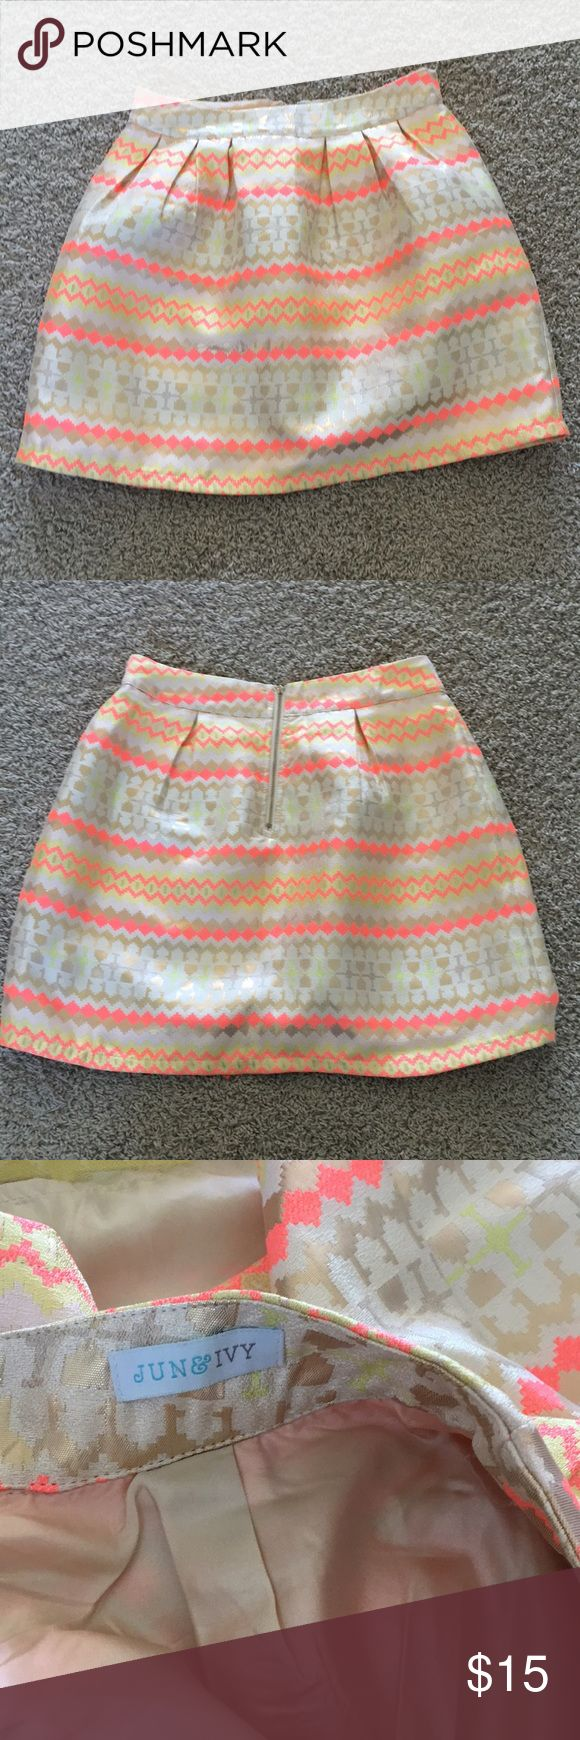 Francesca's Aztec print skirt Perfect condition and super cute! Makes a statement with the beautiful bright colors! Size medium and purchased from Francesca's Collections! Francesca's Collections Skirts